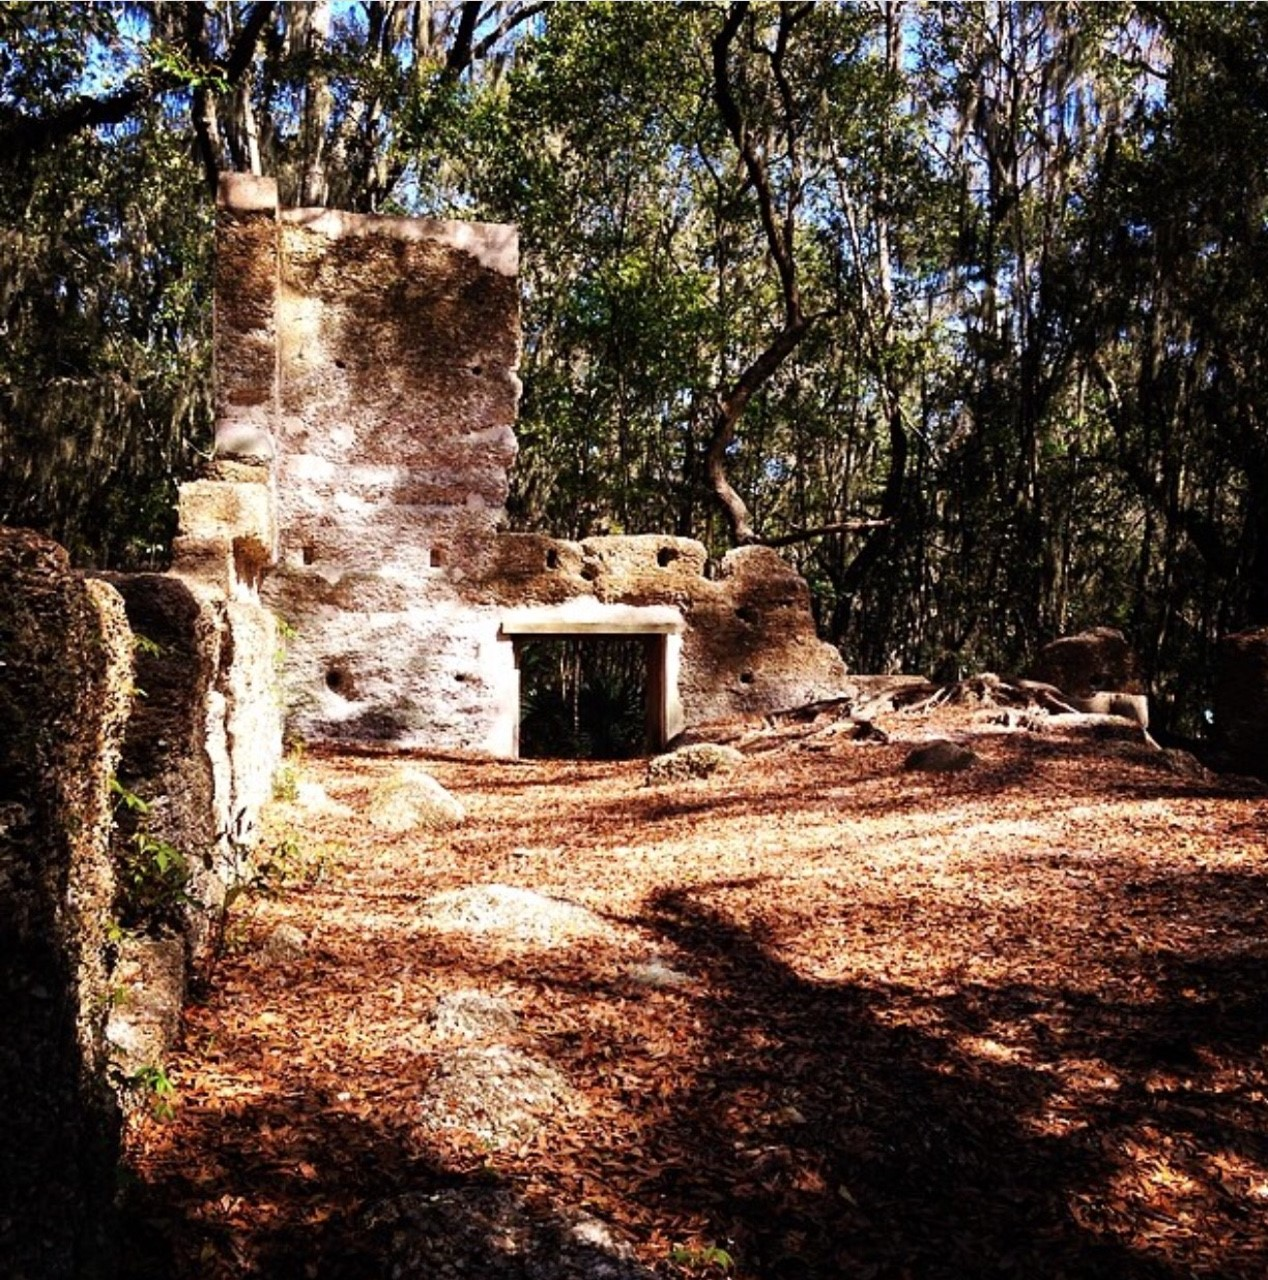 The ruins of a plantation house at the Baynard Ruins in Hilton Head, SC.